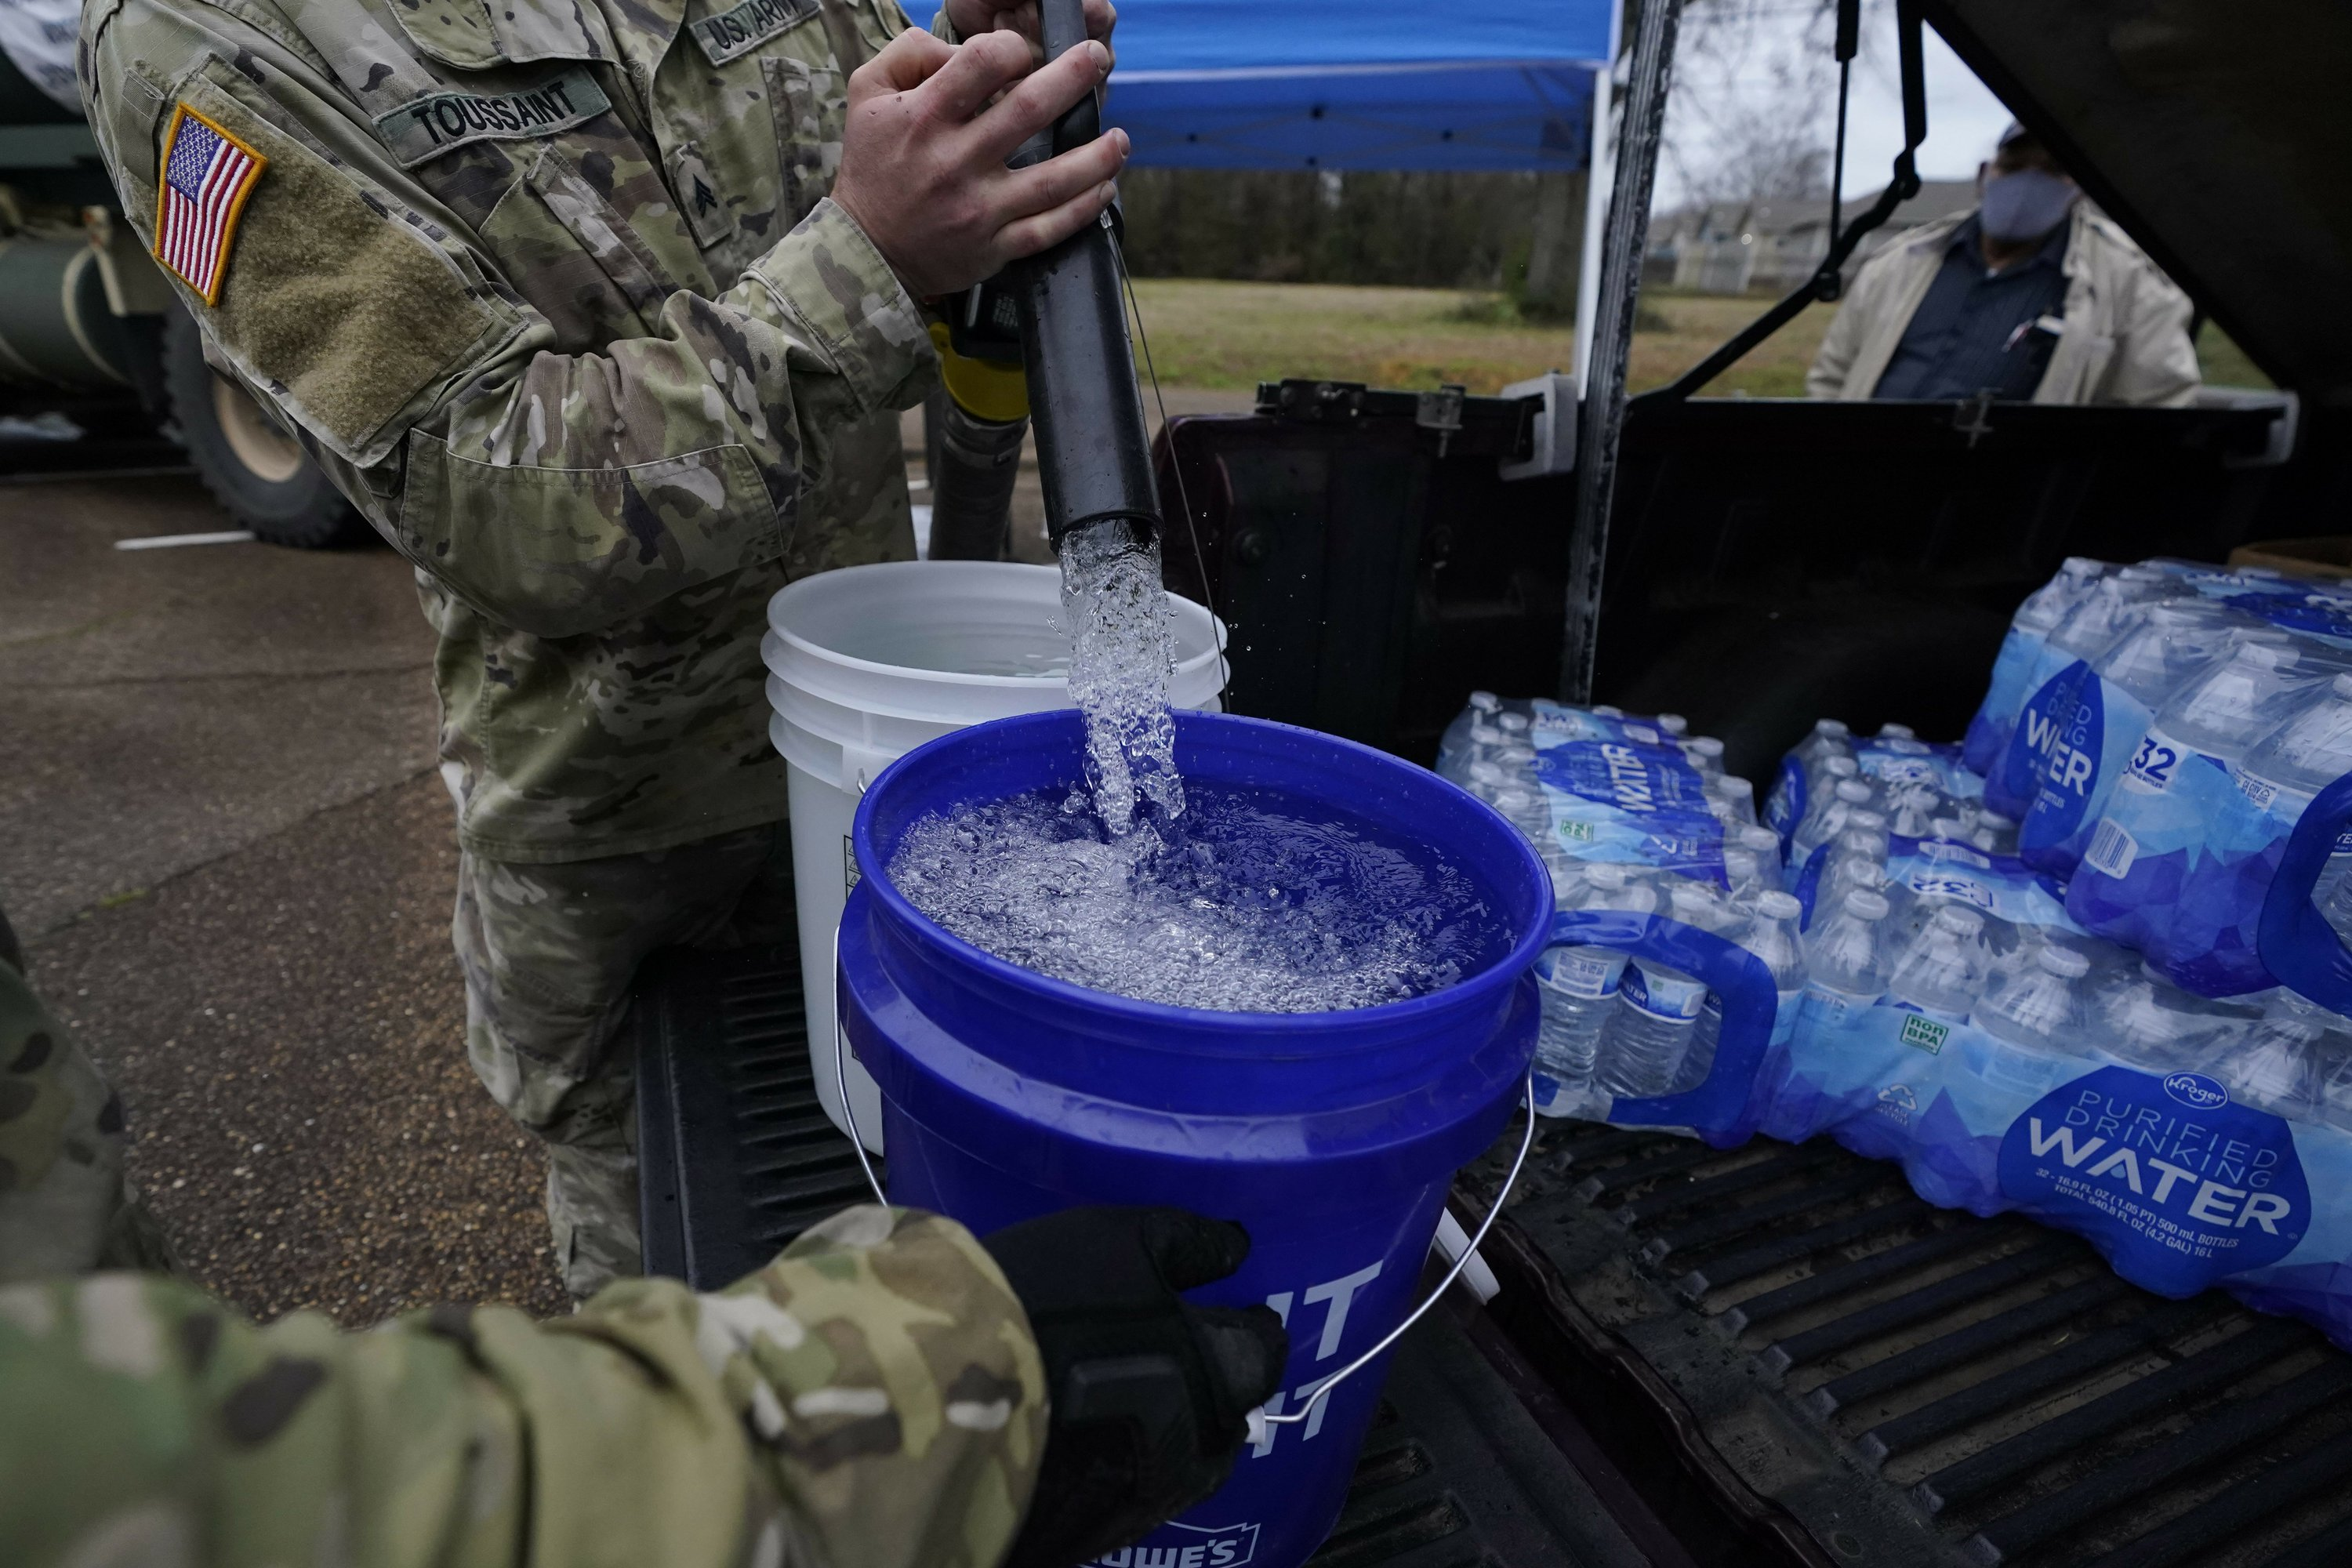 Water crisis continues in Mississippi, weeks after cold snap - The Associated Press